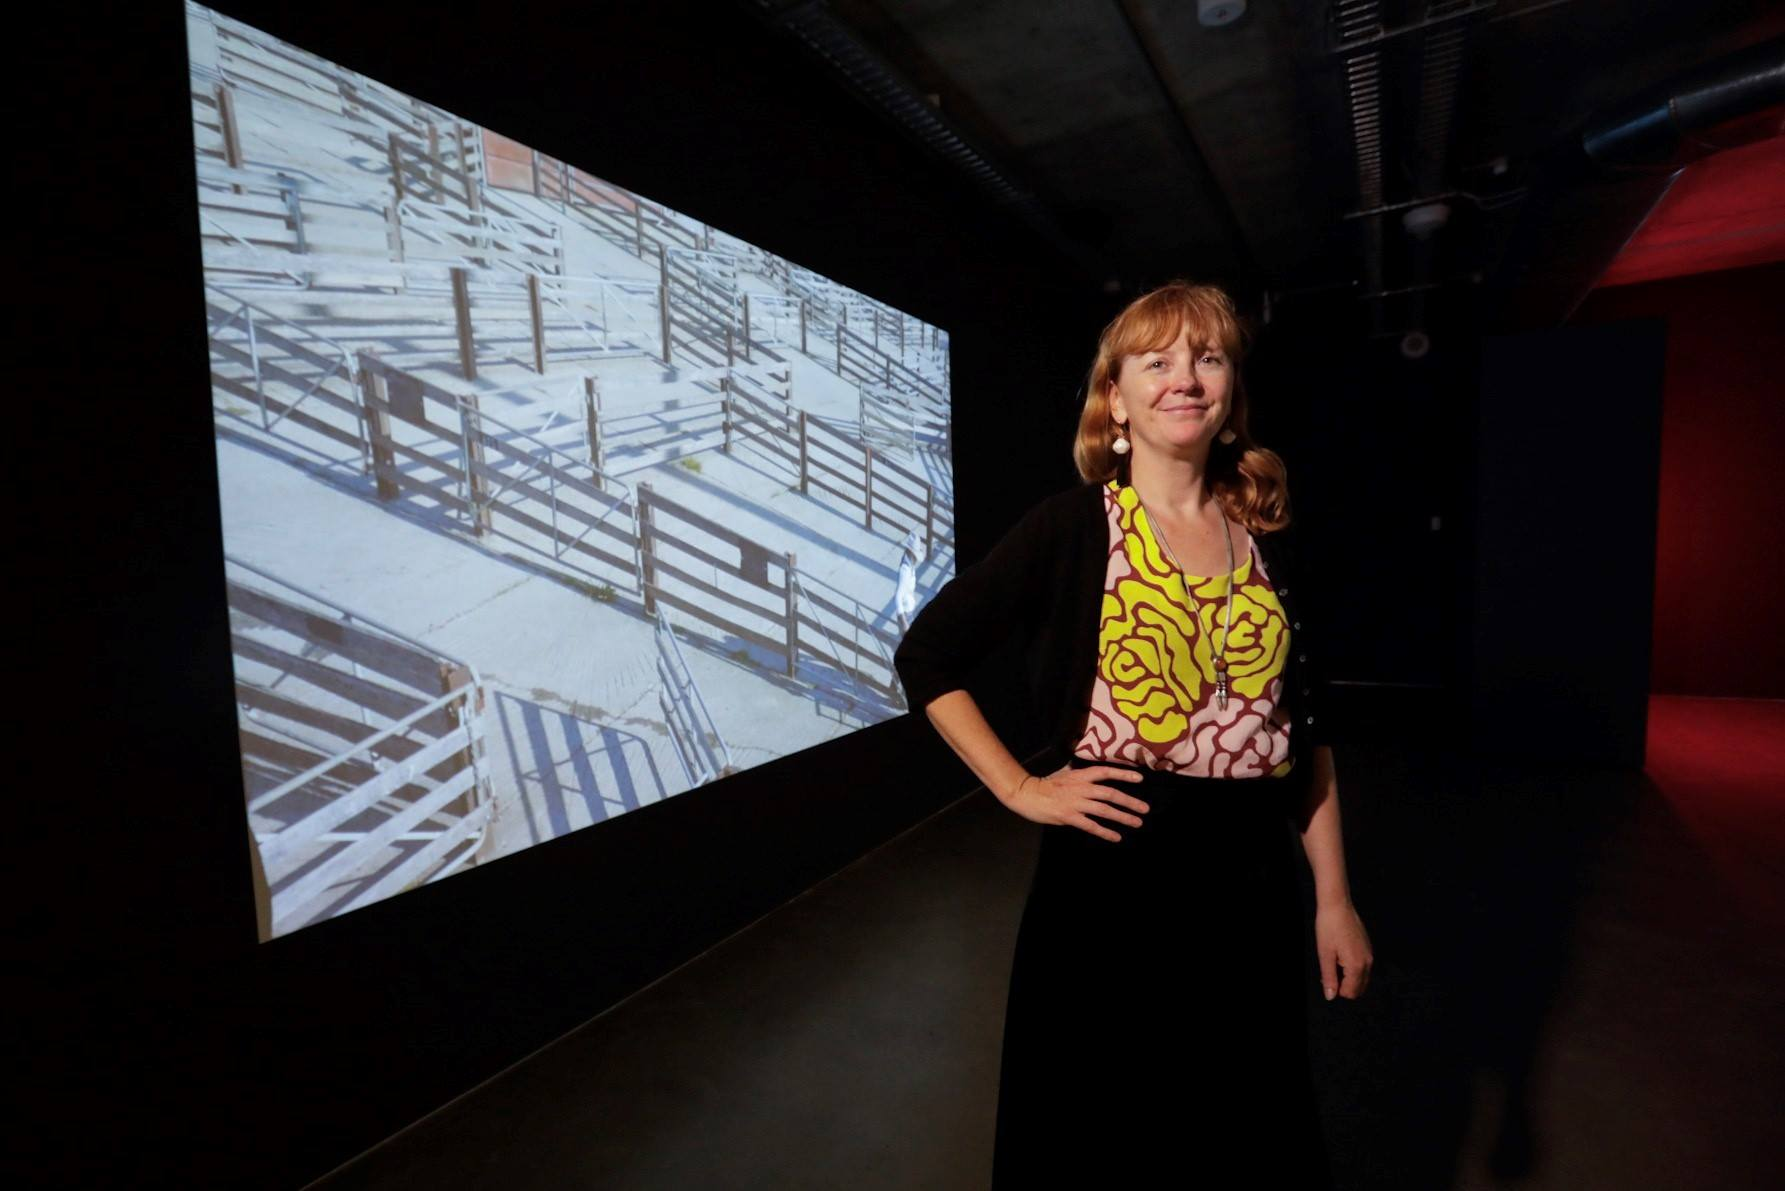 Image: Zanny Begg with her video work The Bullwhip Effect 2017, currently exhibited in the NSW Visual Arts Fellowship Exhibition at Artbank in Sydney. Photograph by Adam Amin @ Murray Harris Photography, courtesy of Create NSW.